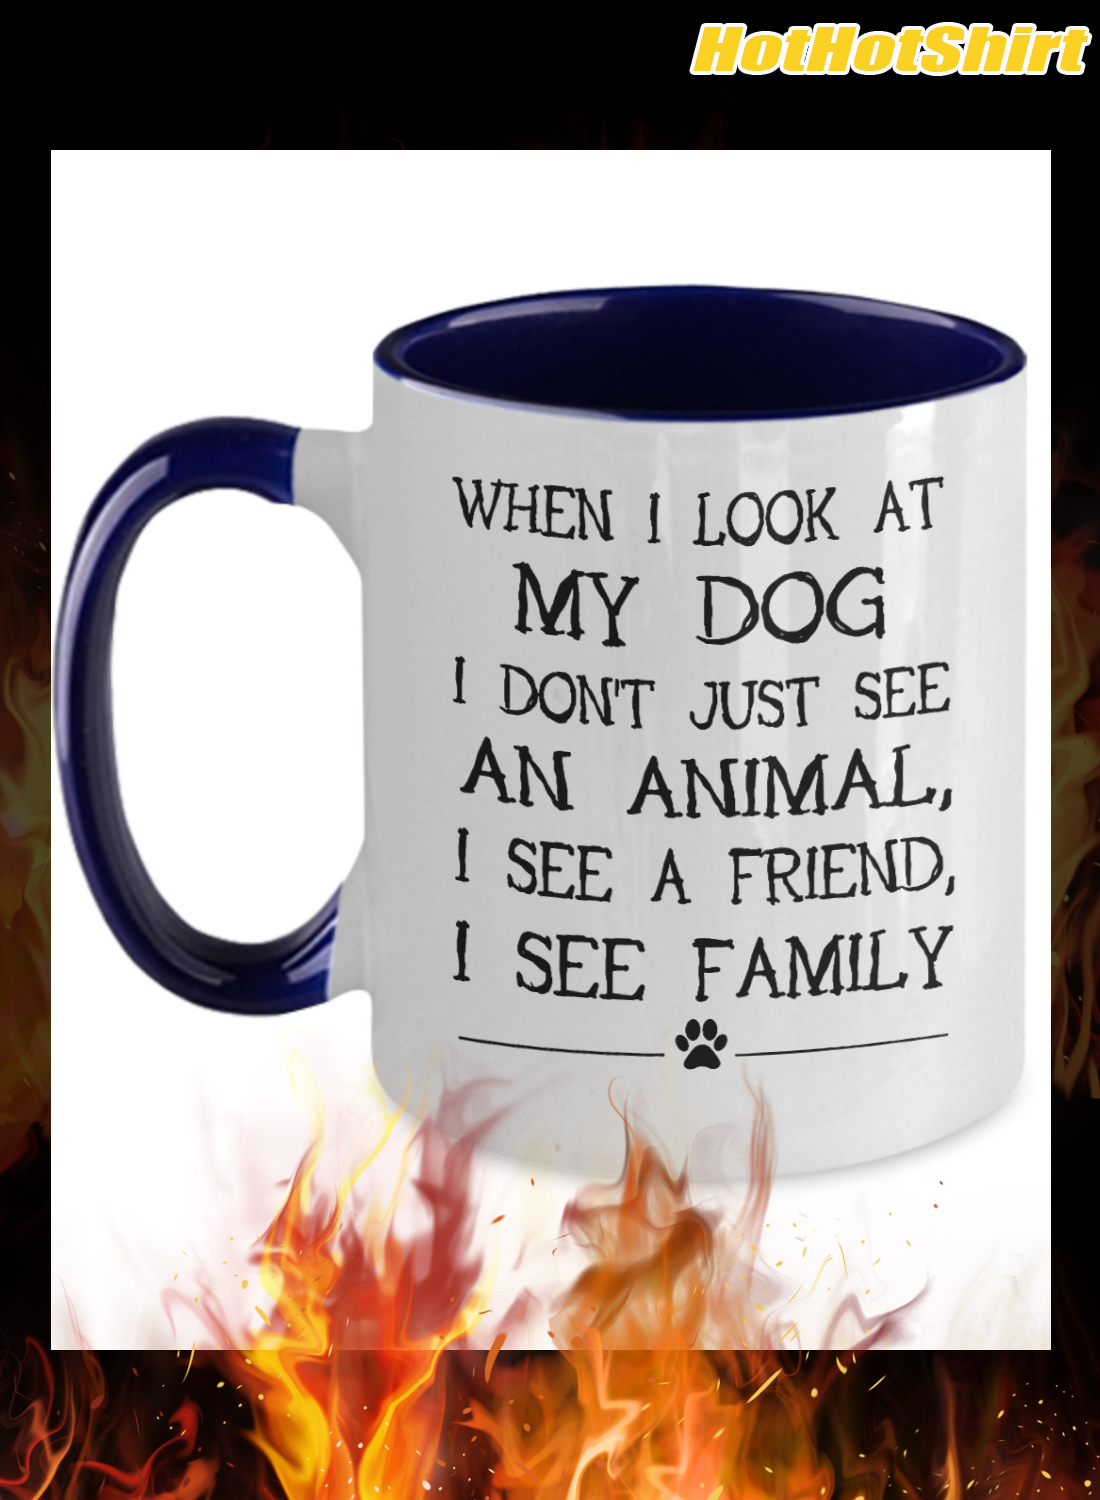 When I Look My Dog I Don't Just See An Animal I See A Friend I See Family Mug 3